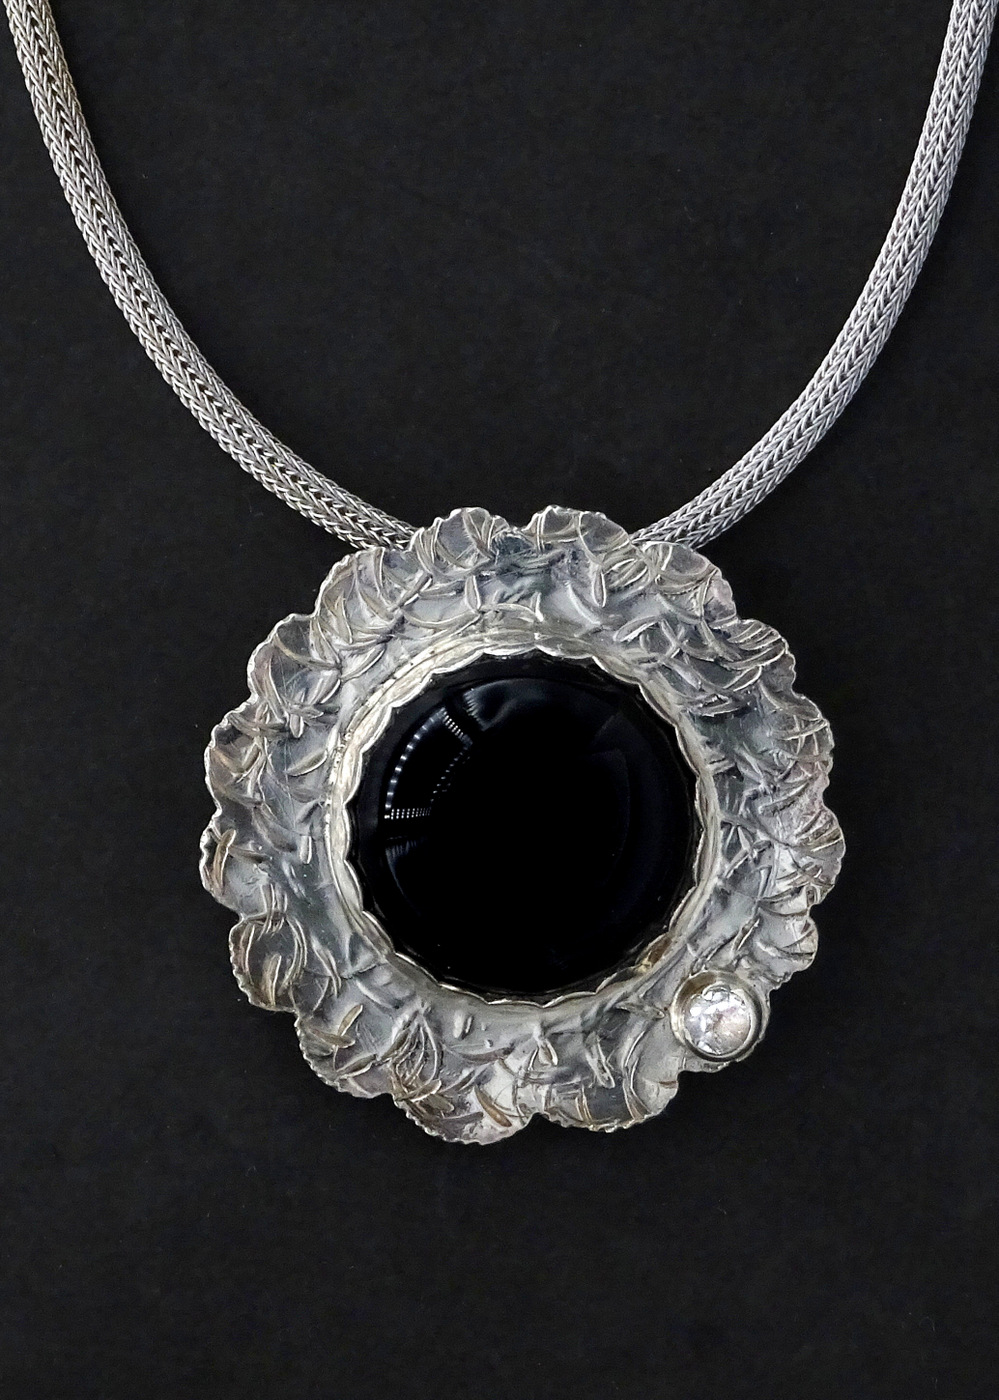 ROUND EMBOSSED PENDANT WITH BLACK STONE,  1.75 x 1.75 inches,  16 inch adjustable chain